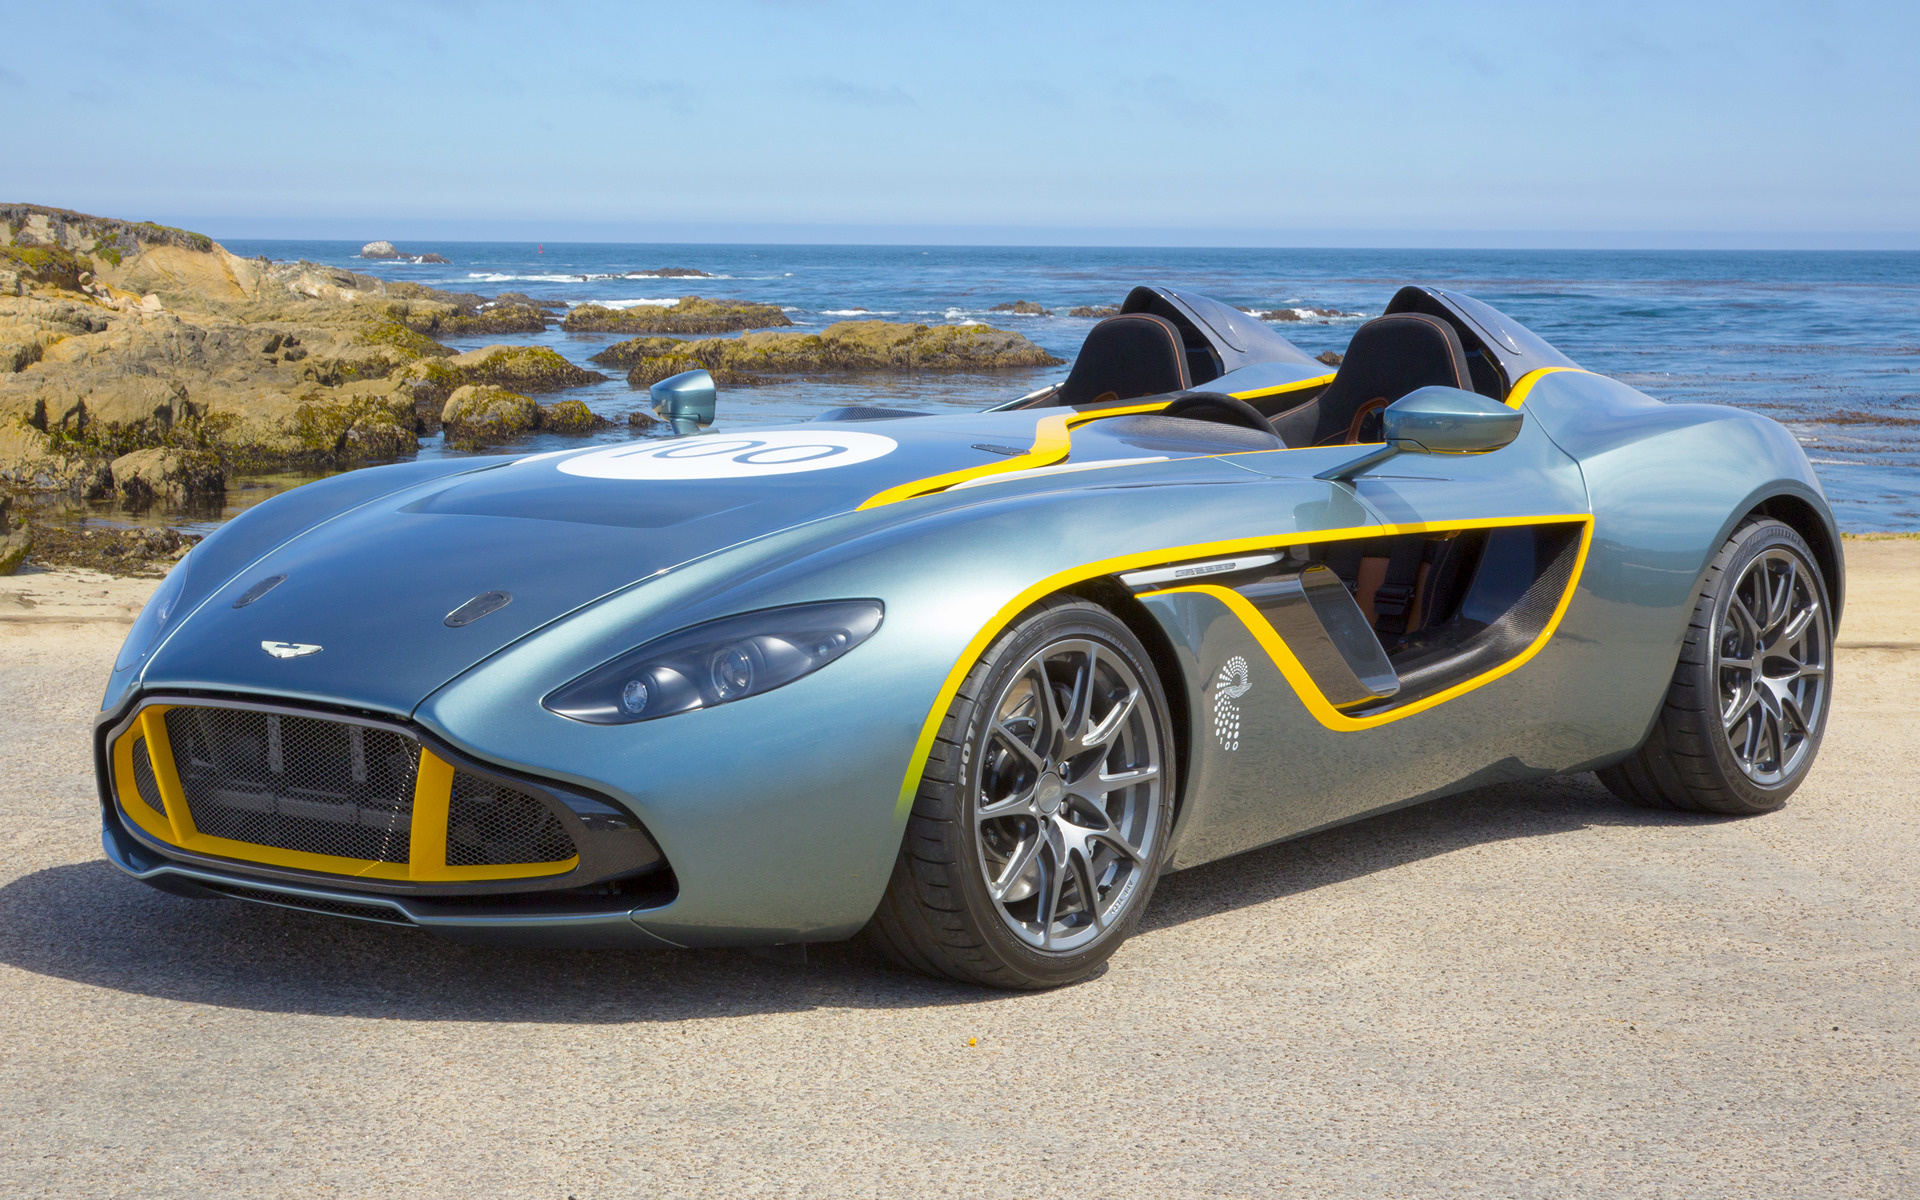 2013 Aston Martin Cc100 Speedster Concept Wallpapers And Hd Images Car Pixel